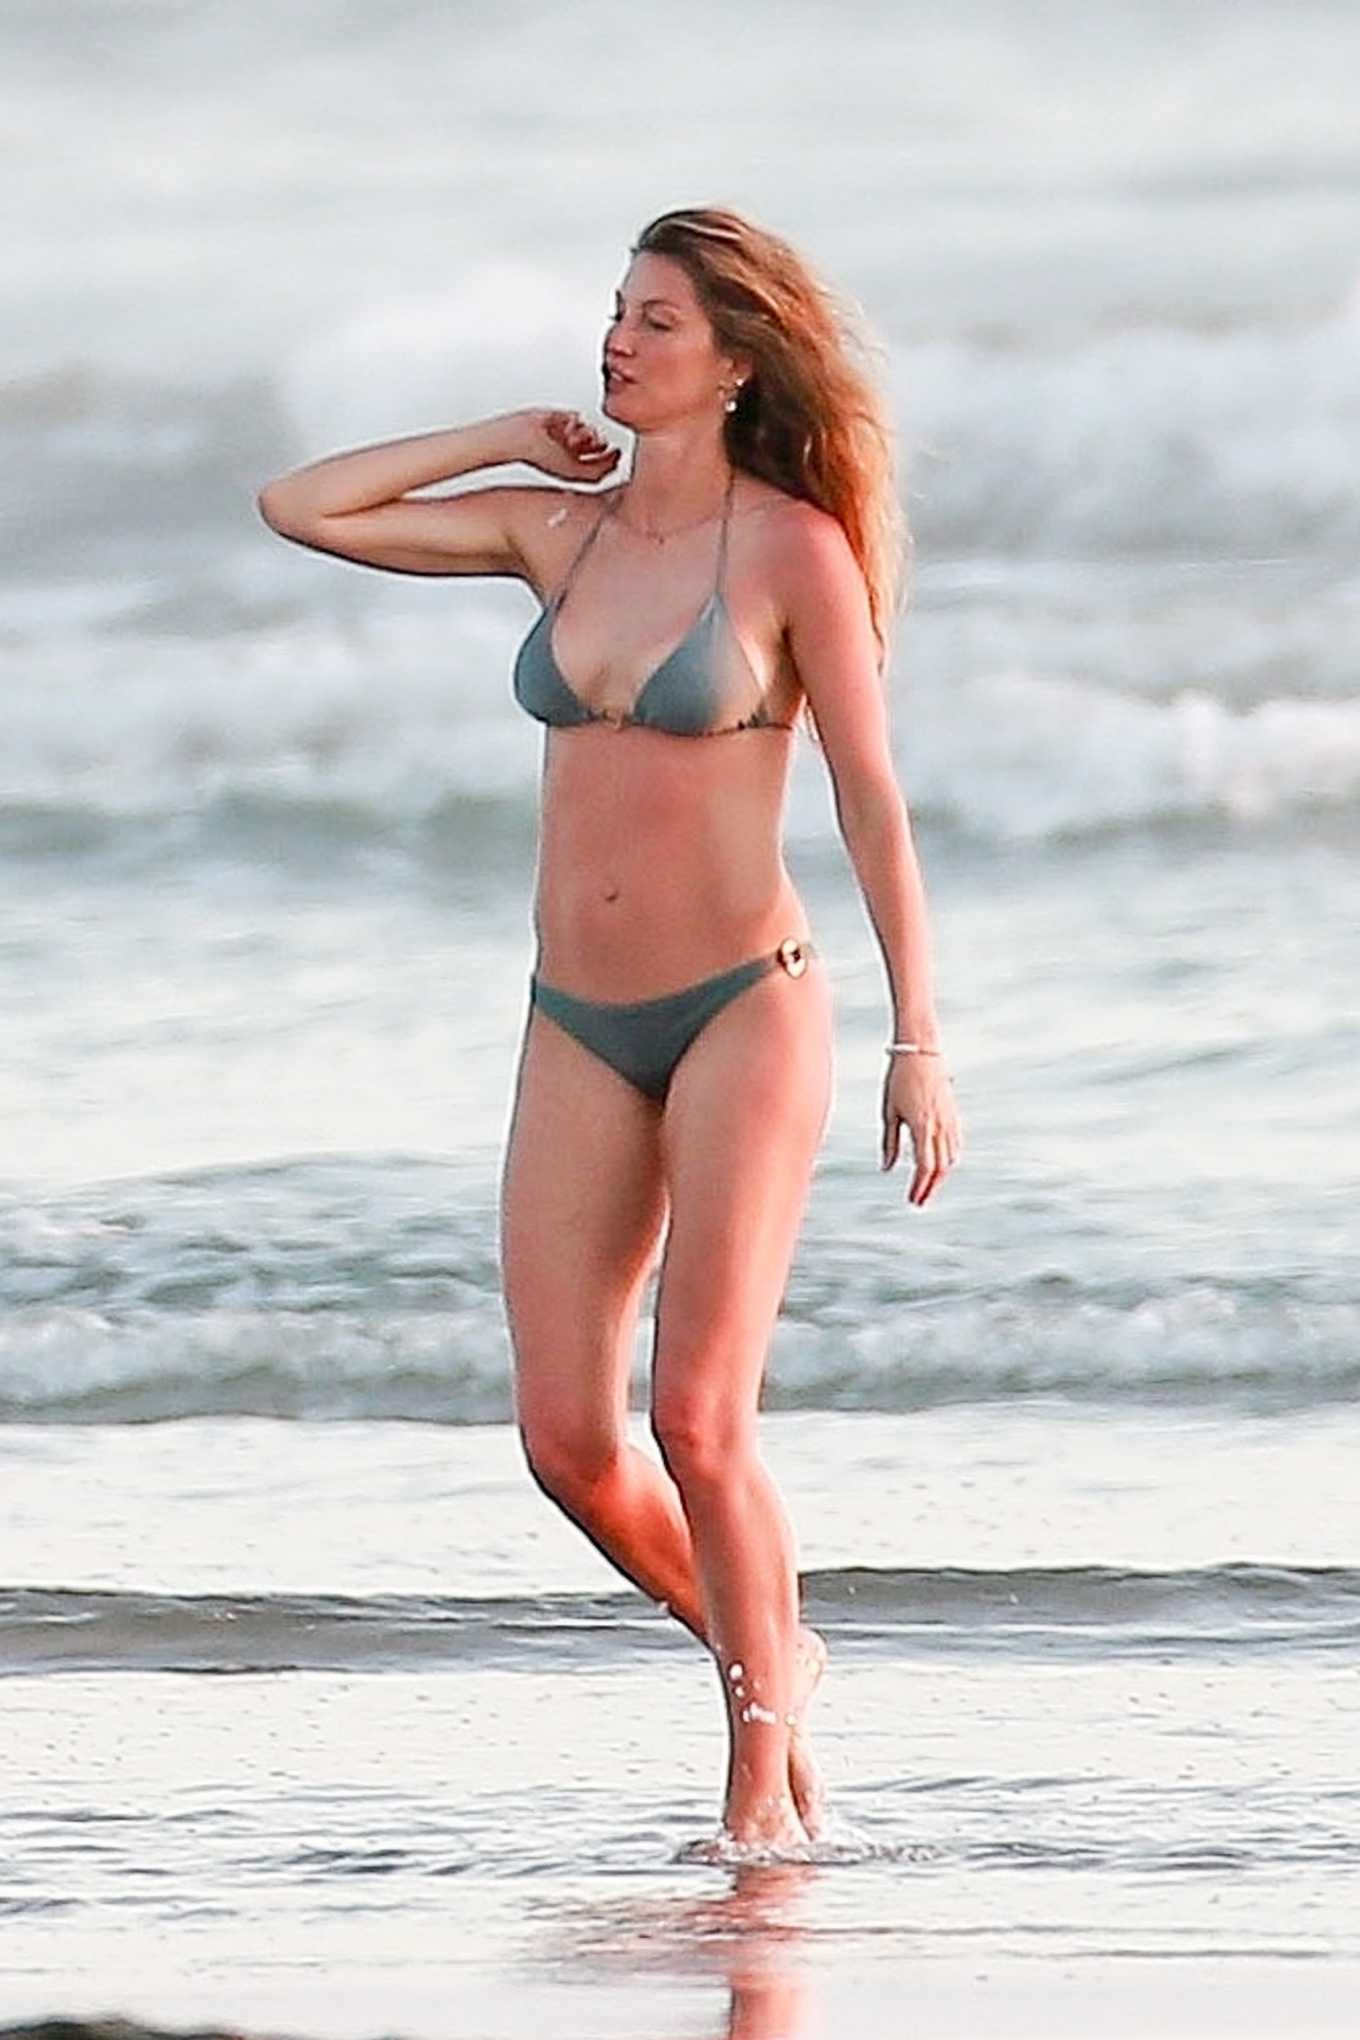 Gisele Bundchen in Bikini on vacationing in Costa Rica